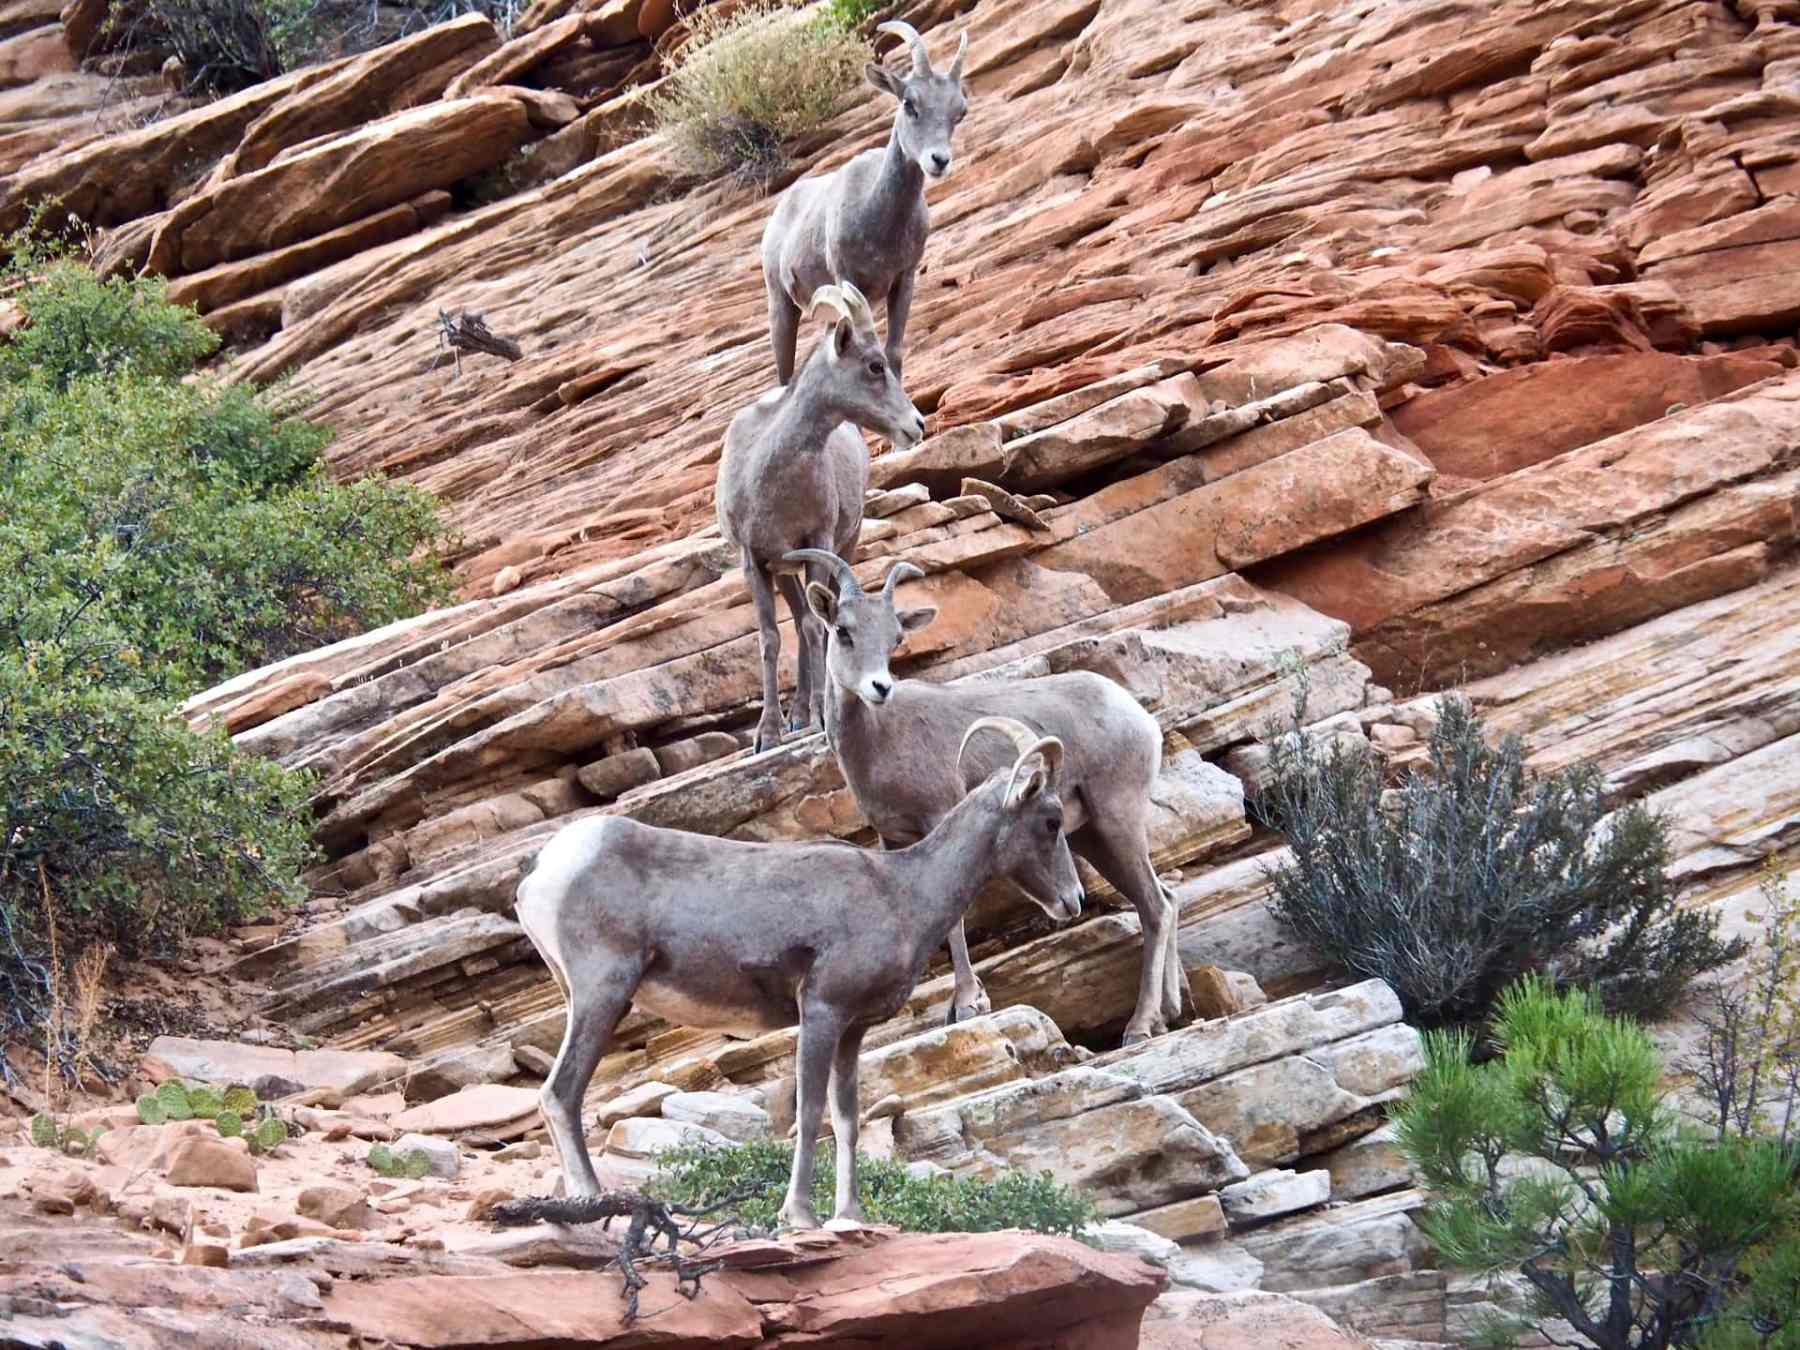 It was so much fun to see the bighorn sheep!